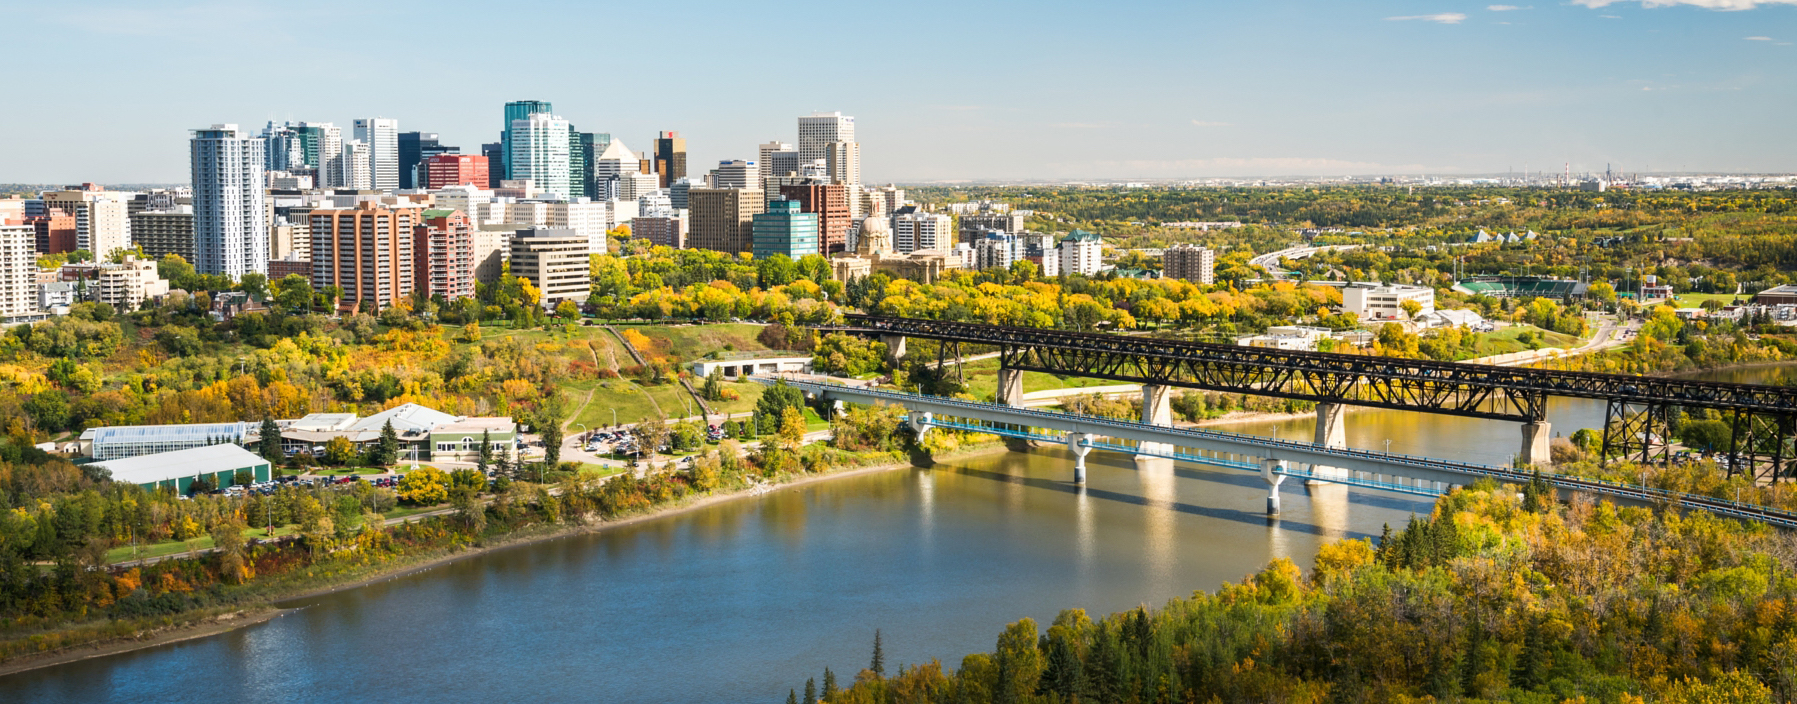 500px Photo ID: 172828367 - I have been wanting to get a birds eye view of Edmonton with the High-level Bridge, the Legislature Building and the Skyline towering over the River Valley. Particularly in Fall I envisioned this view to be super colorful. Well I was right, today I had the chance too shoot from the roof-top of one the UofA's buildings, opening a totally new perspective for me who does not possess a drone (yet). The leaves have begun to change to golden already and a week from now color should be peaking, so I will be back on top of that roof, for three more shots: Sunrise, Sunset and a Nightshot. Stay tuned.